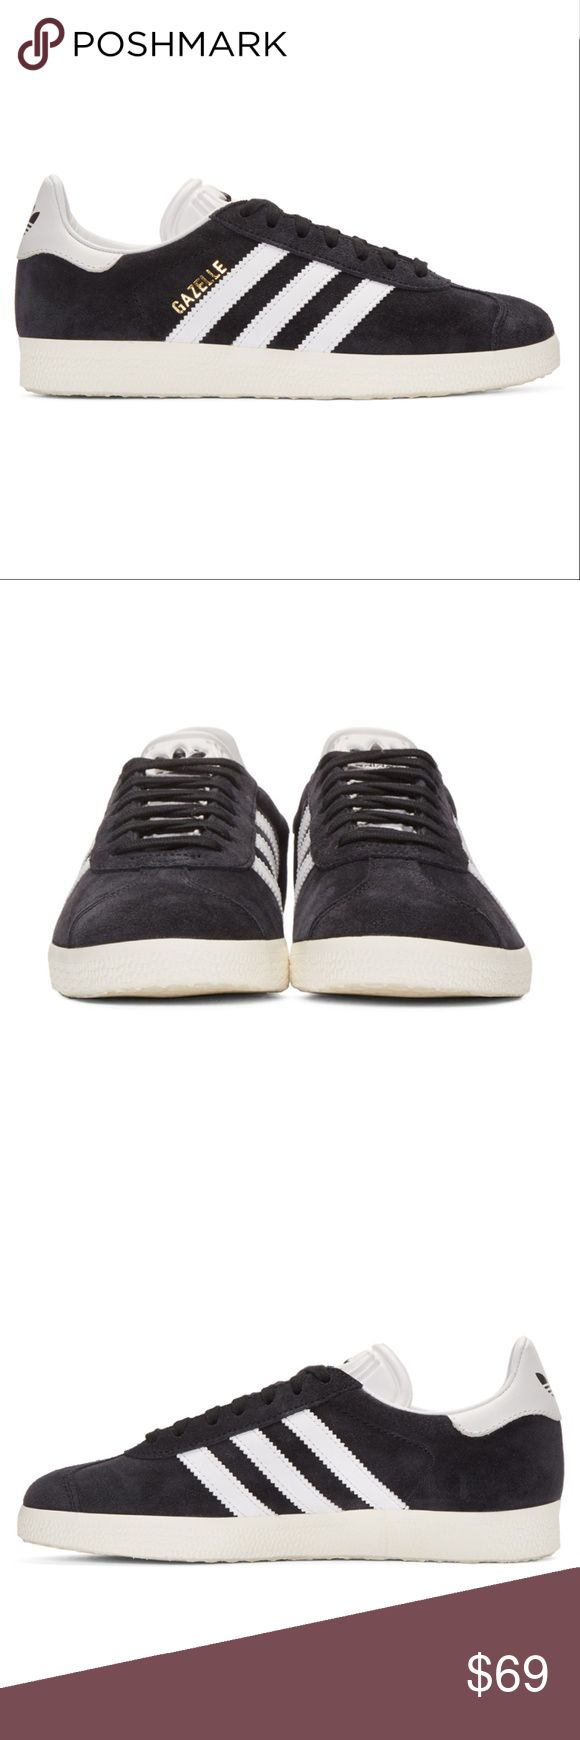 [NWT] adidas OG Black Vintage Gazelle Sneakers Low-top suede sneakers in black. Subtle distressing throughout. Round toe. Tonal lace-up closure. Logo embossed in black at white tongue. Style name stamp in gold-tone at outer side. Signature leather striping in white at sides. Logo printed in black at white leather heel tab. Textured rubber sole in ivory. Alternate lacing in white. Tonal stitching.   Upper: leather. Sole: rubber. adidas Shoes Sneakers